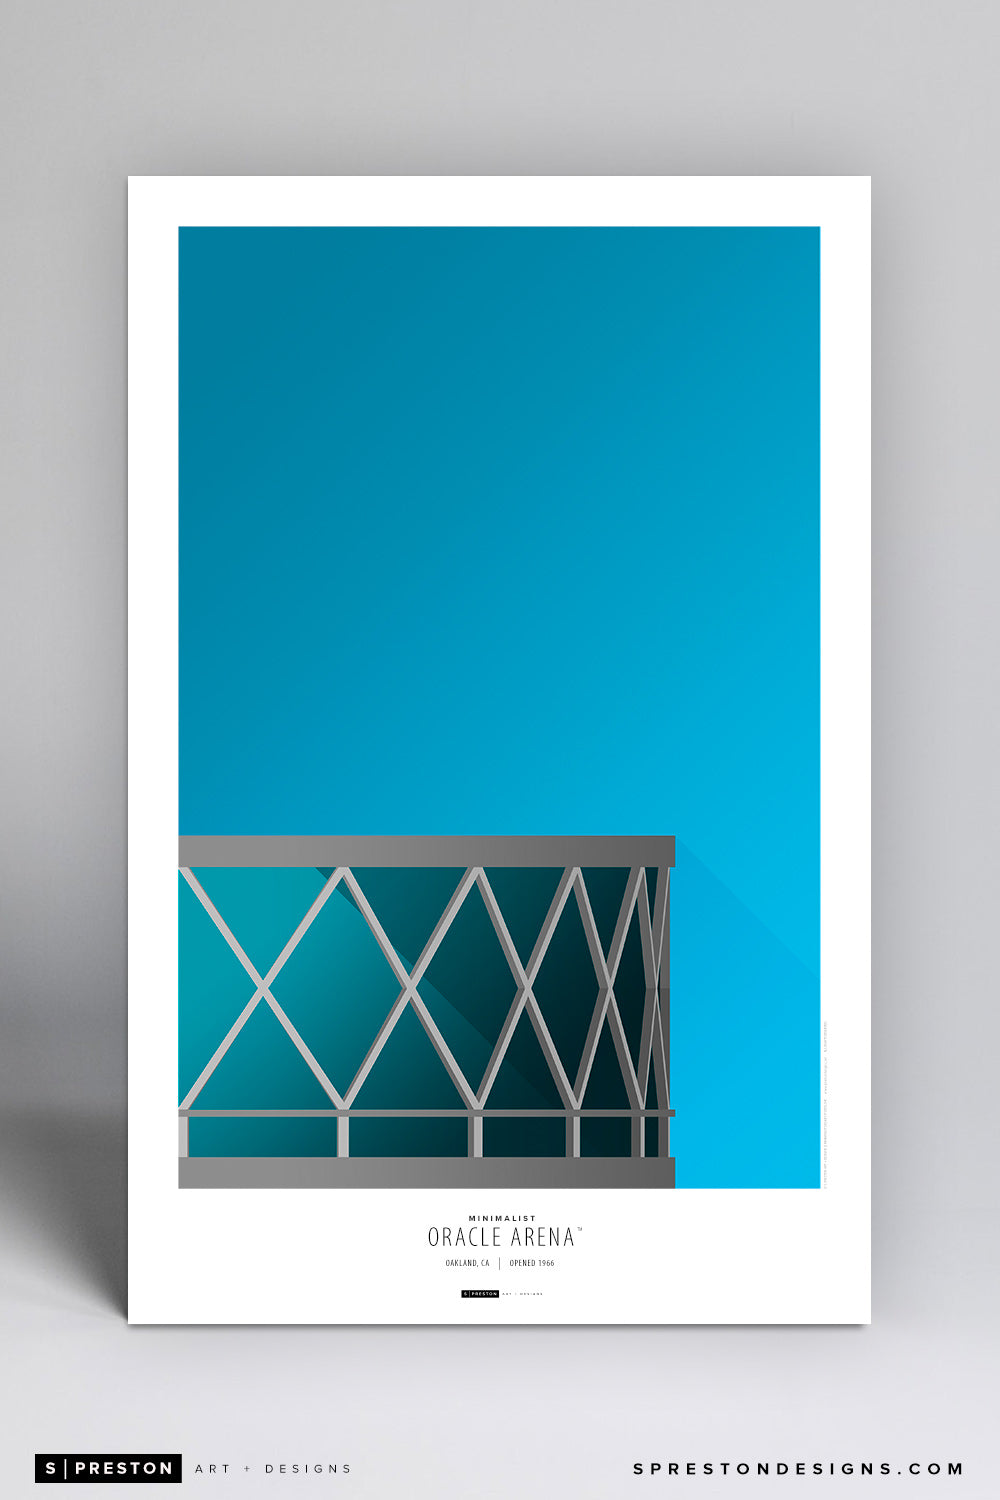 Minimalist Oracle Arena Art Poster